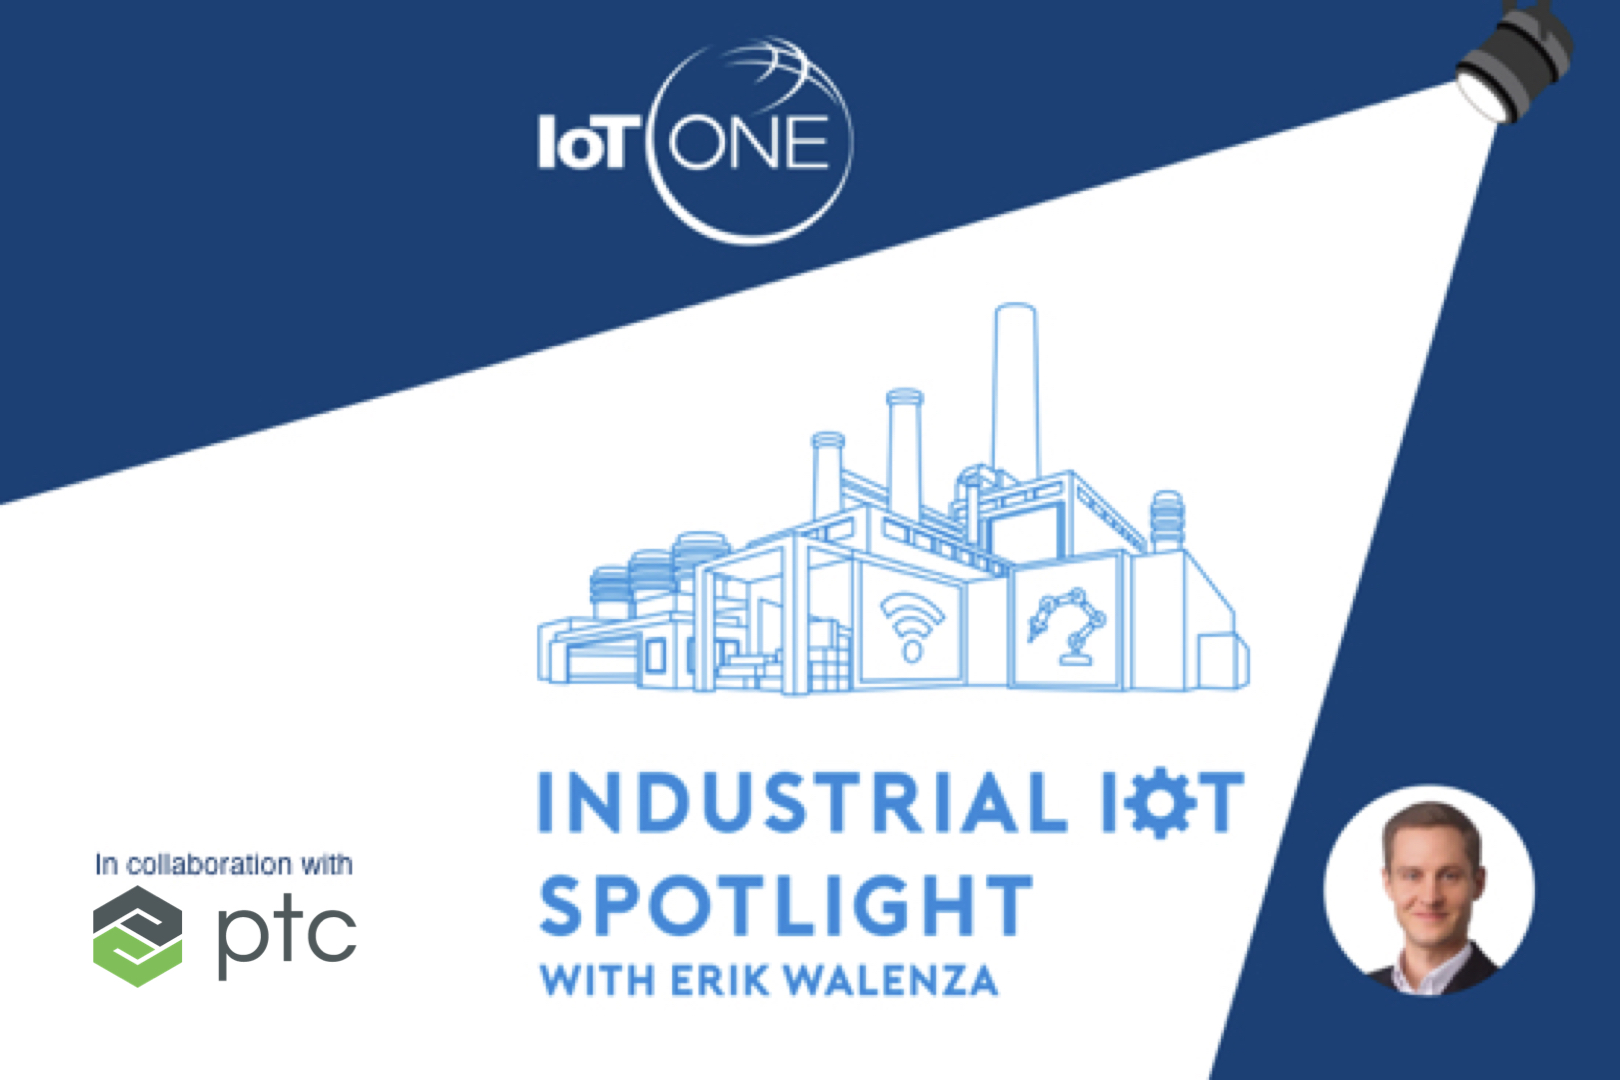 PTC x IoT ONE IIoT Spotlight Podcast EP050 – Machine Vision and the Importance of IoT Data Management Platforms – An Interview with JL Beaudoin of Averna show art